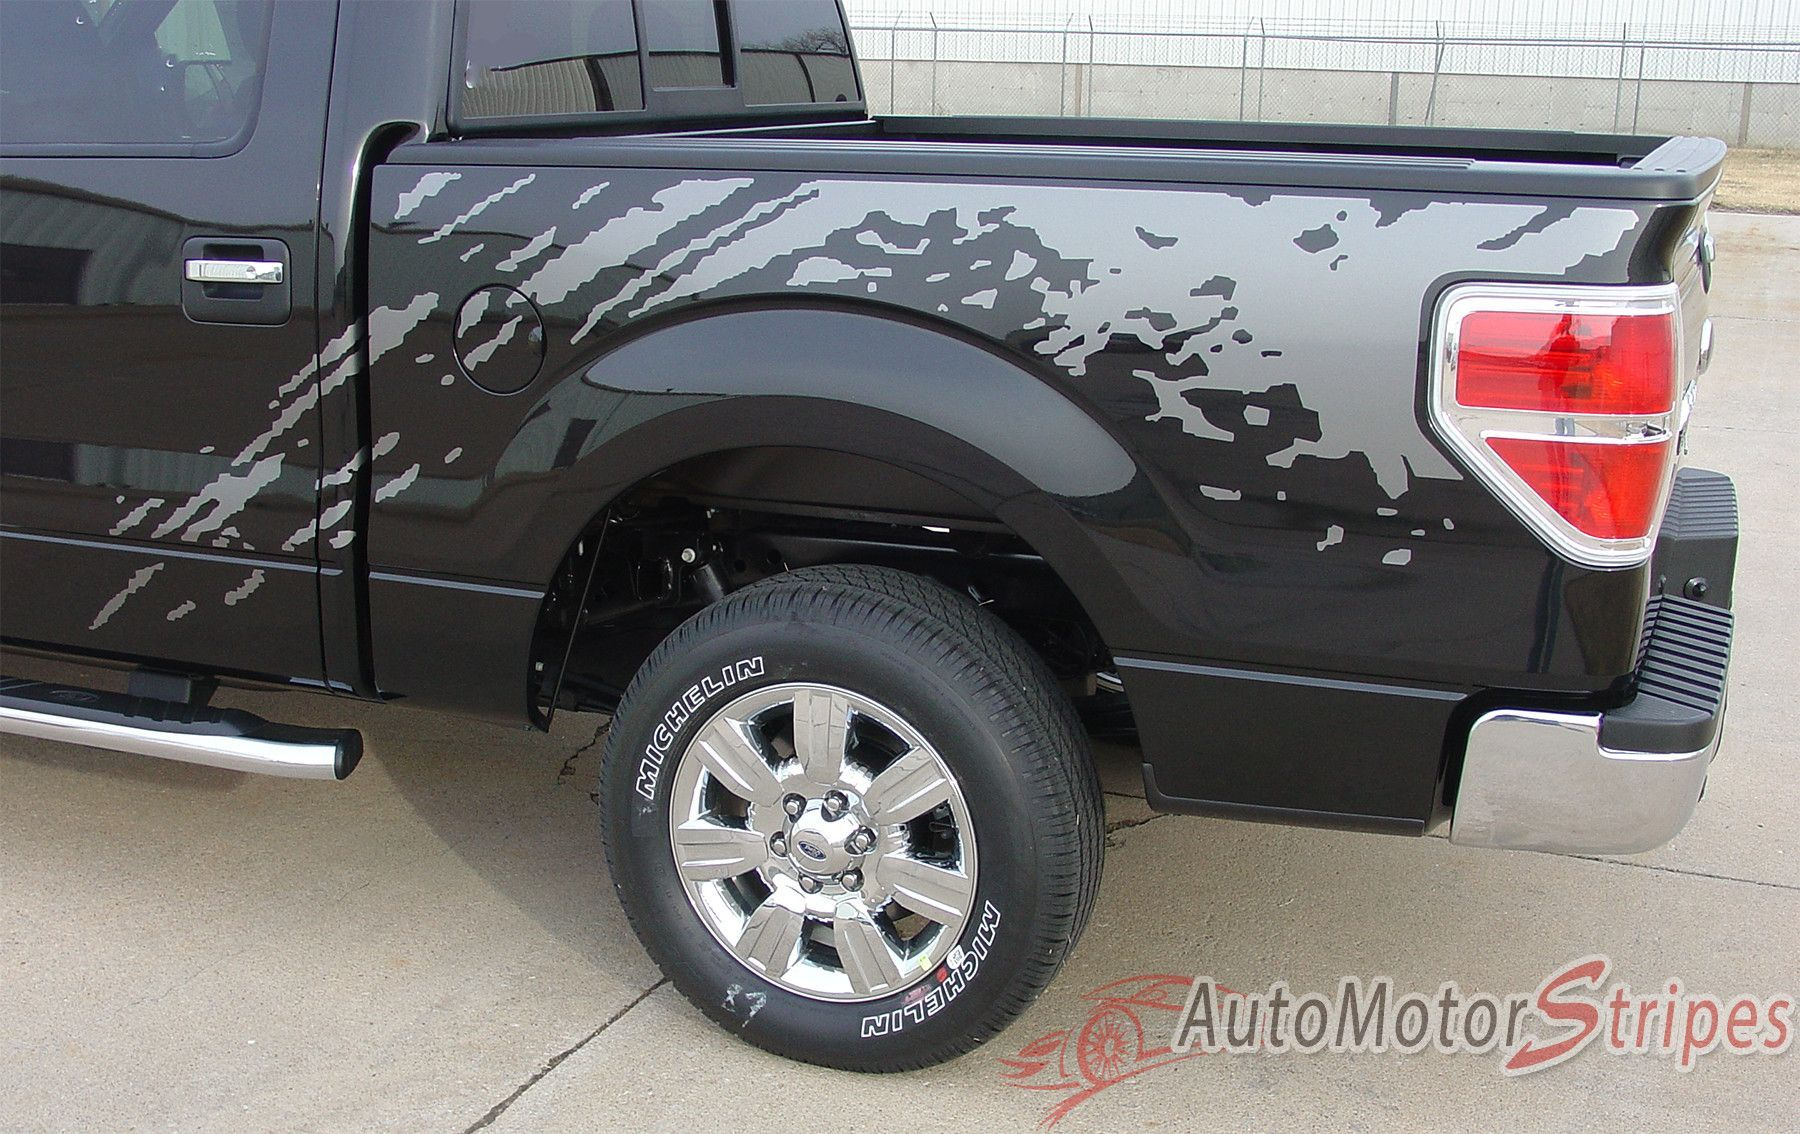 2009 2014 ford f 150 predator factory style bed raptor mudslinger style vinyl decal graphic 3m stripes